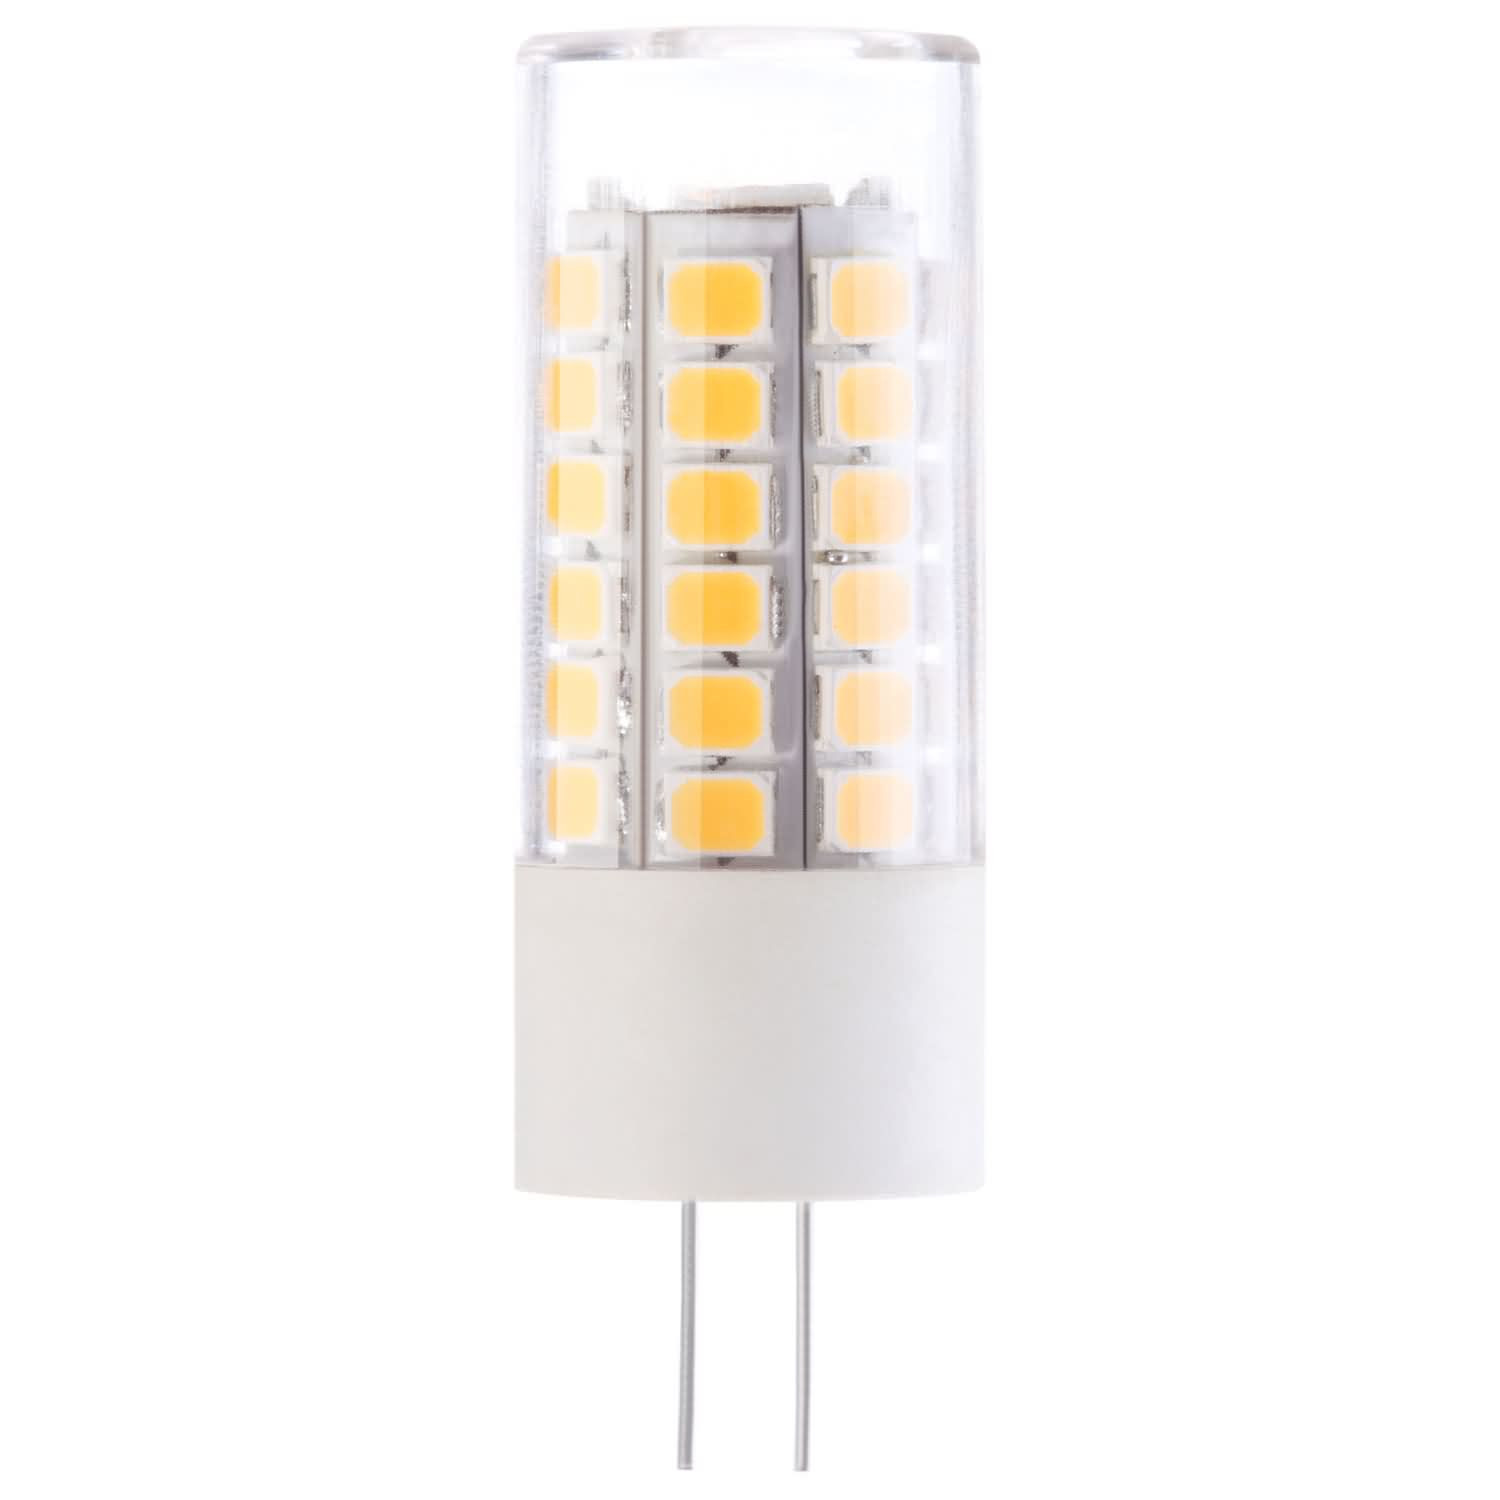 MENGS® G4 5W LED Light 51x 2835 SMD LED Bulb Lamp With Plastic Coated Aluminum Material In Warm White Energy-Saving Light